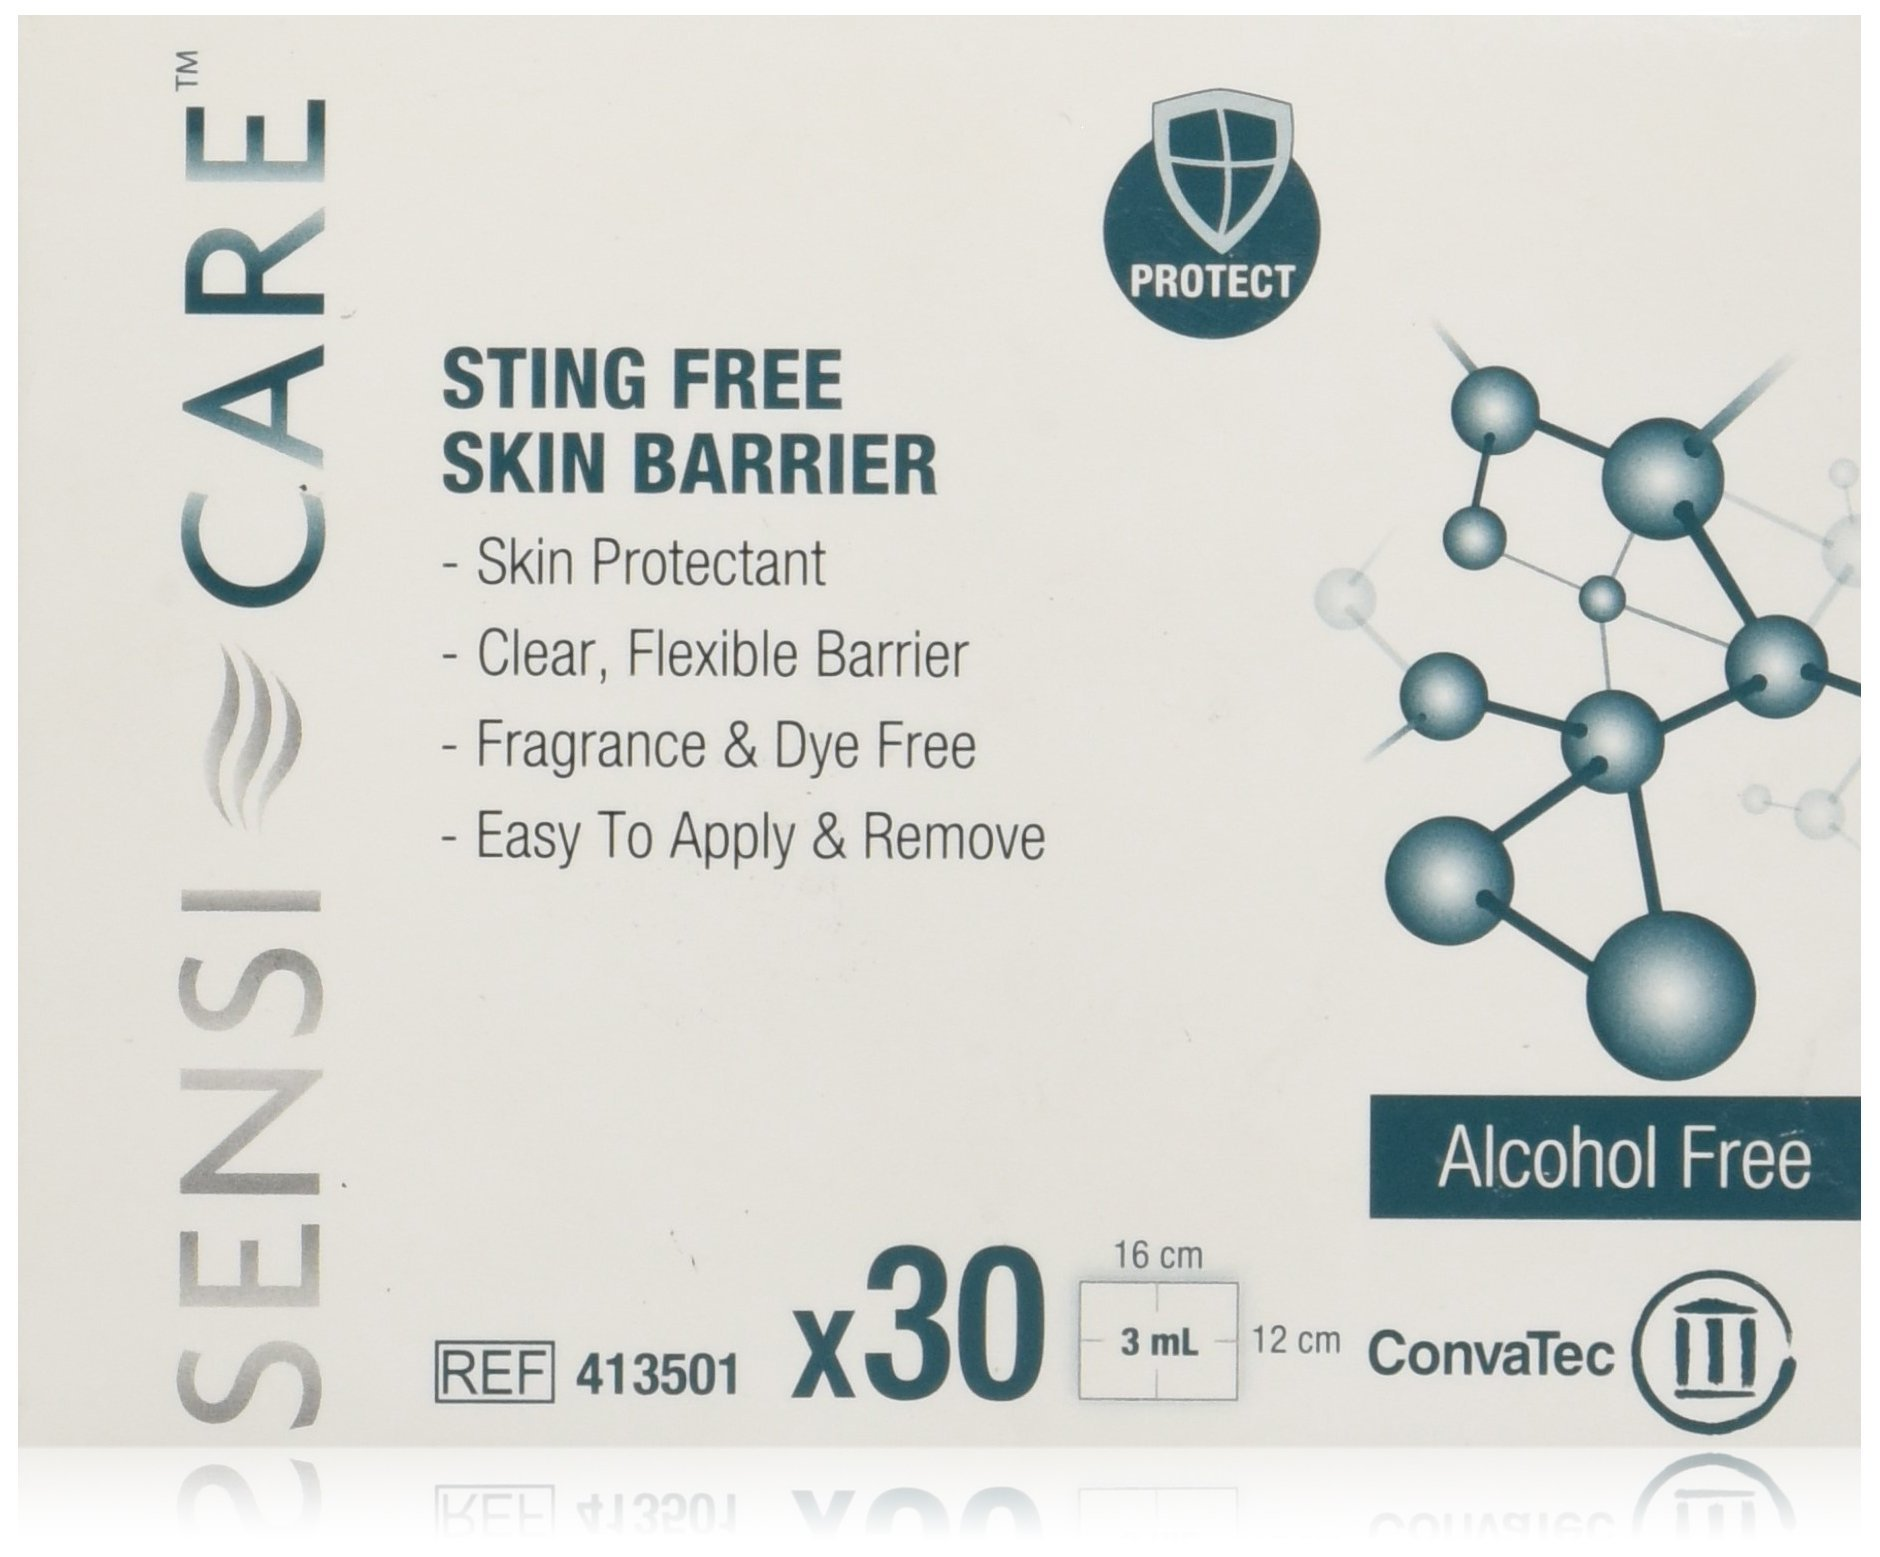 SENSI-CARE Sting Free Barrier Wipe, 30PK by ConvaTec (Image #1)